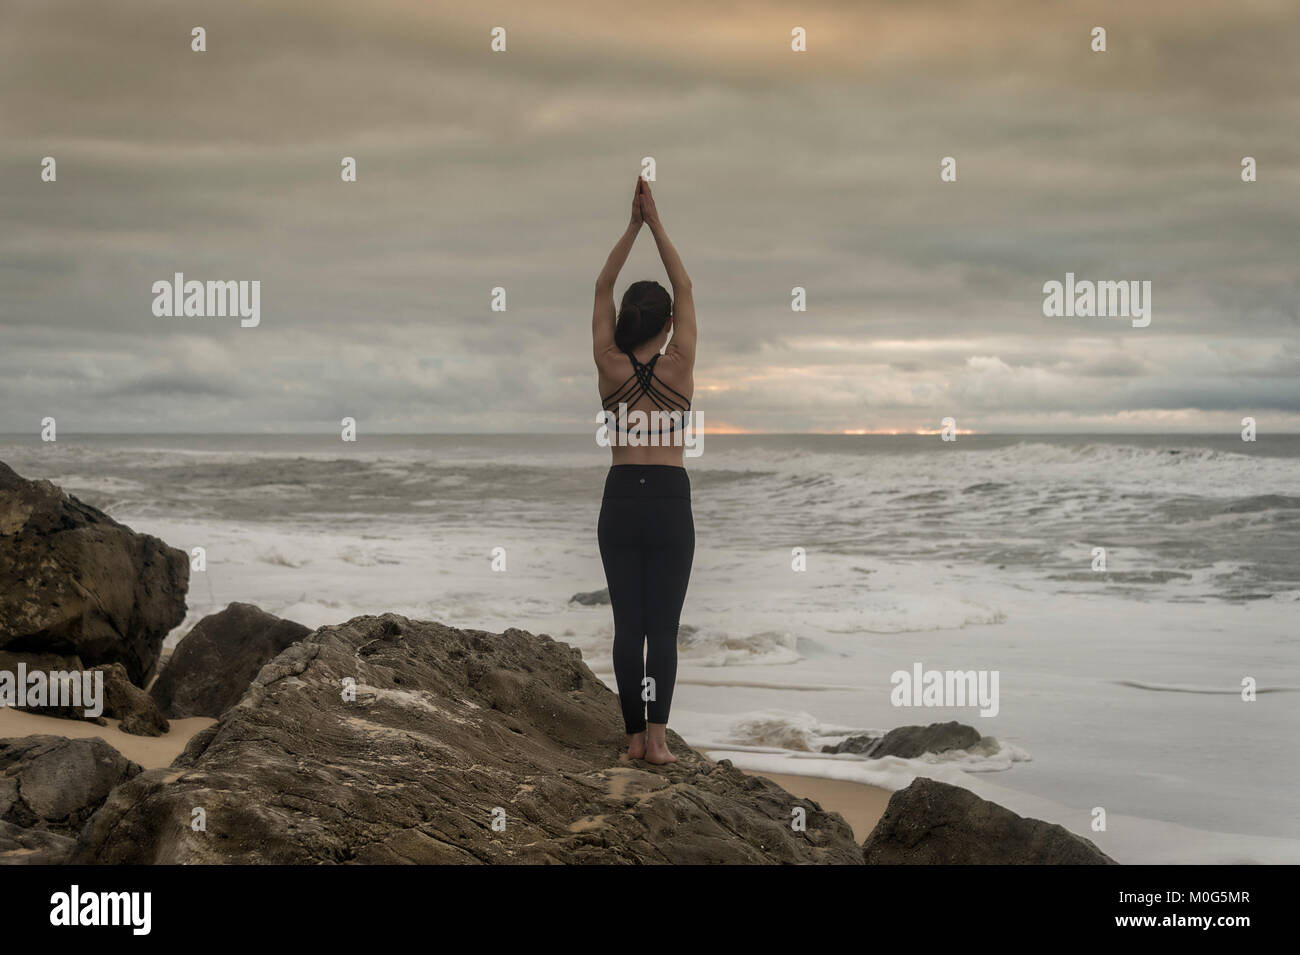 woman doing yoga on rocks by the sea, standing lotus position. - Stock Image